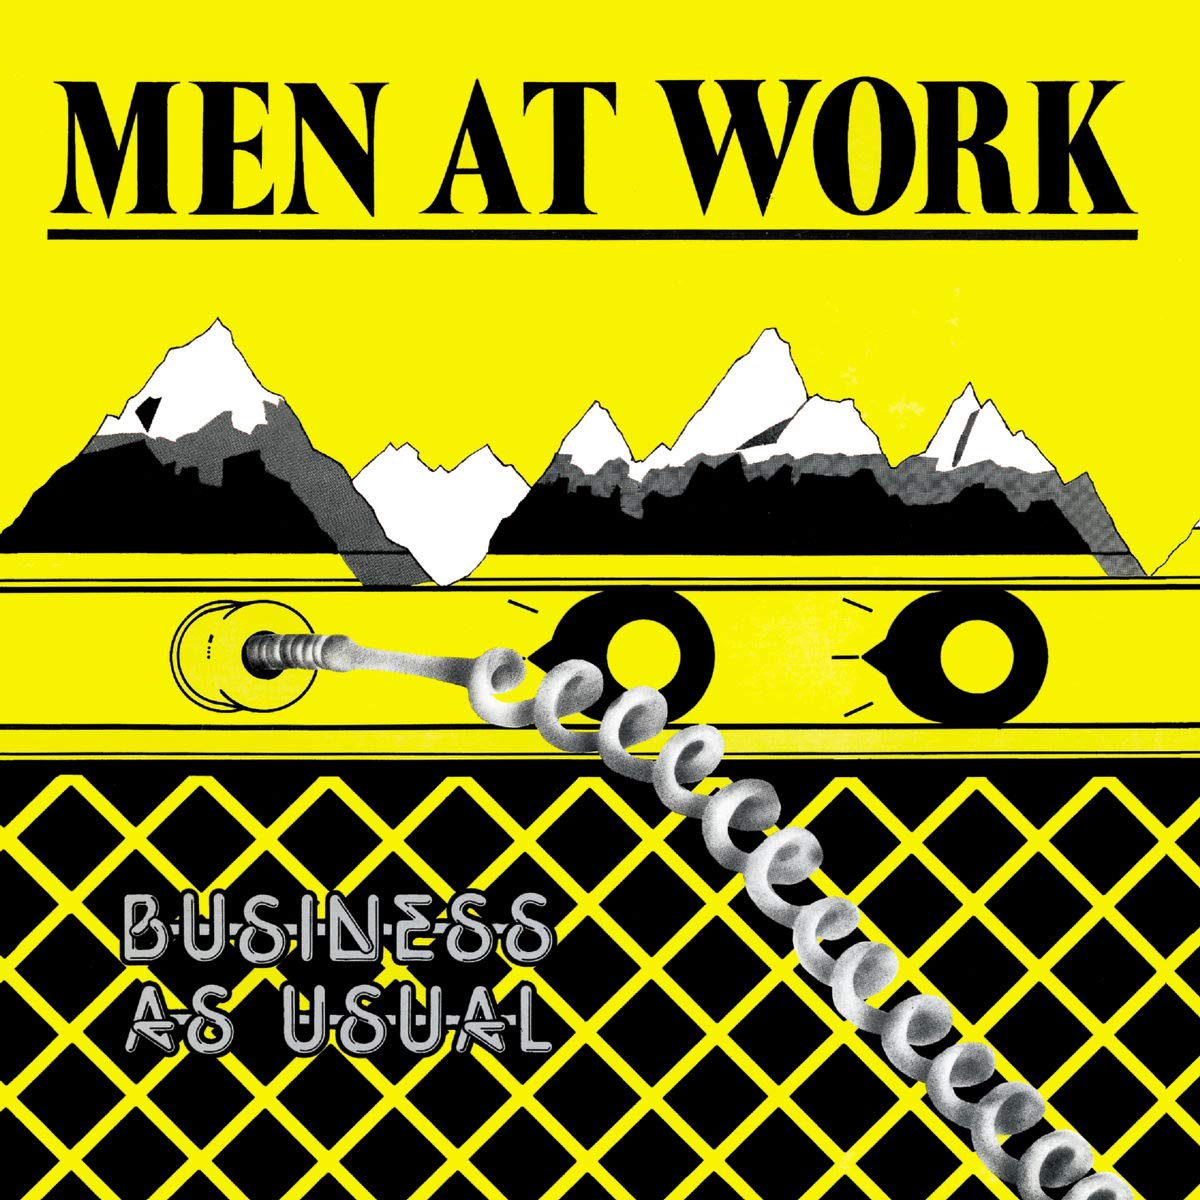 Art for Down Under by Men At Work